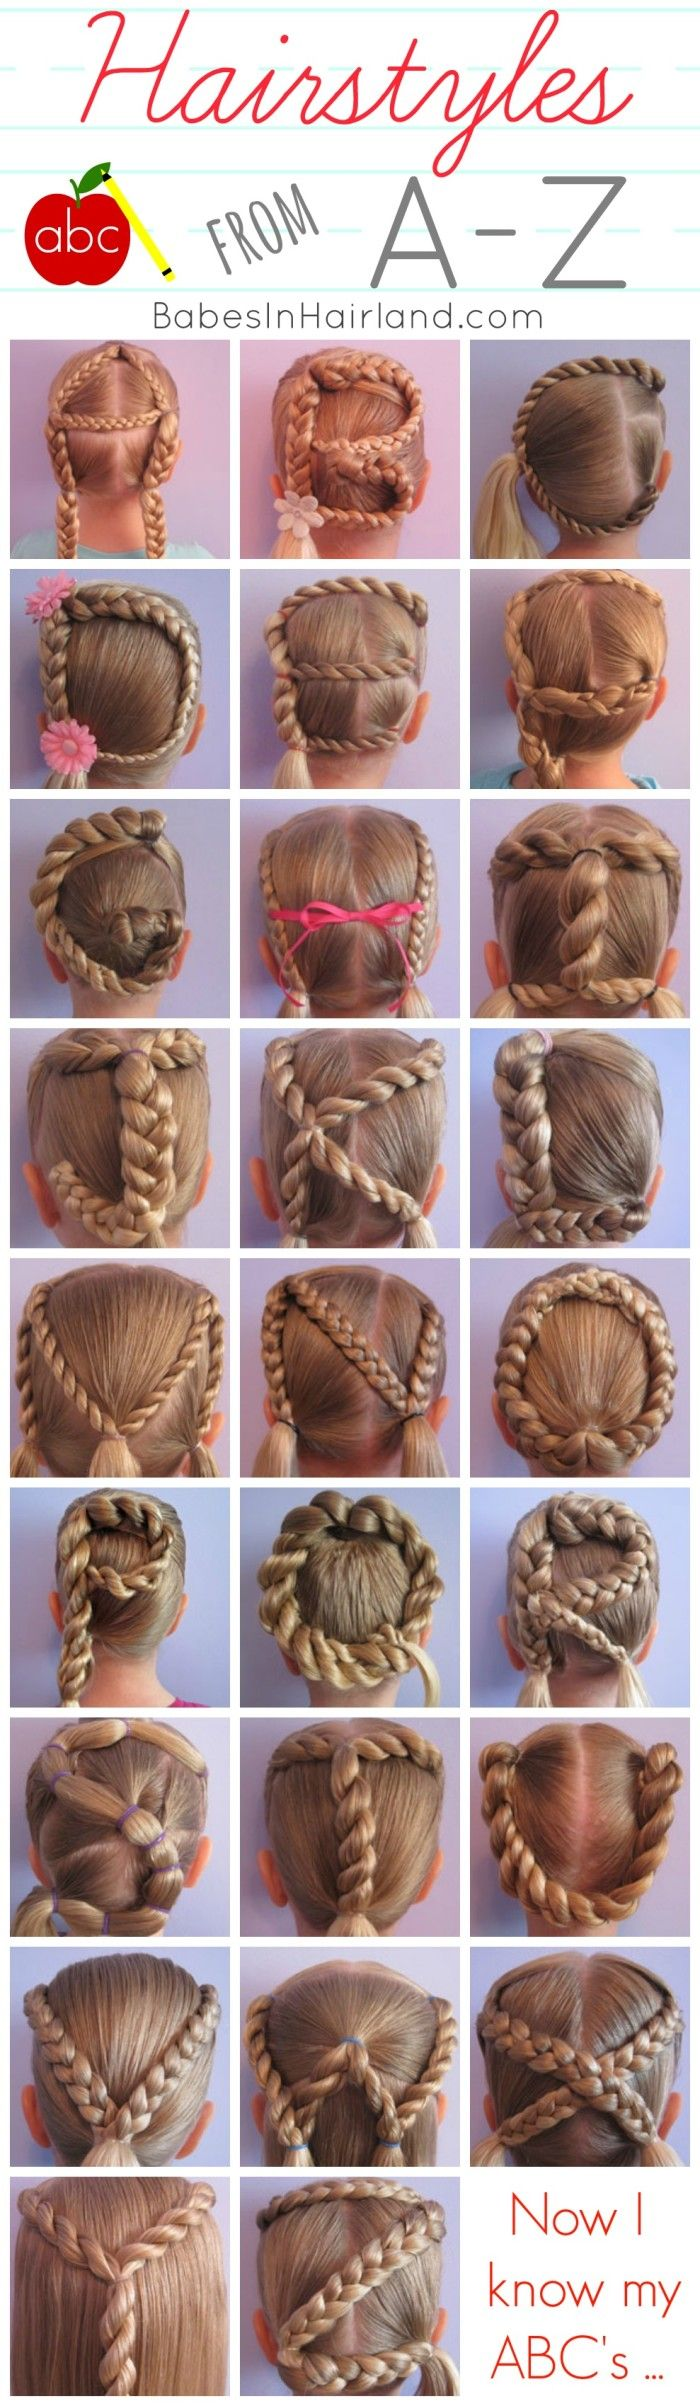 best images about hairstyles on pinterest braids hairstyles